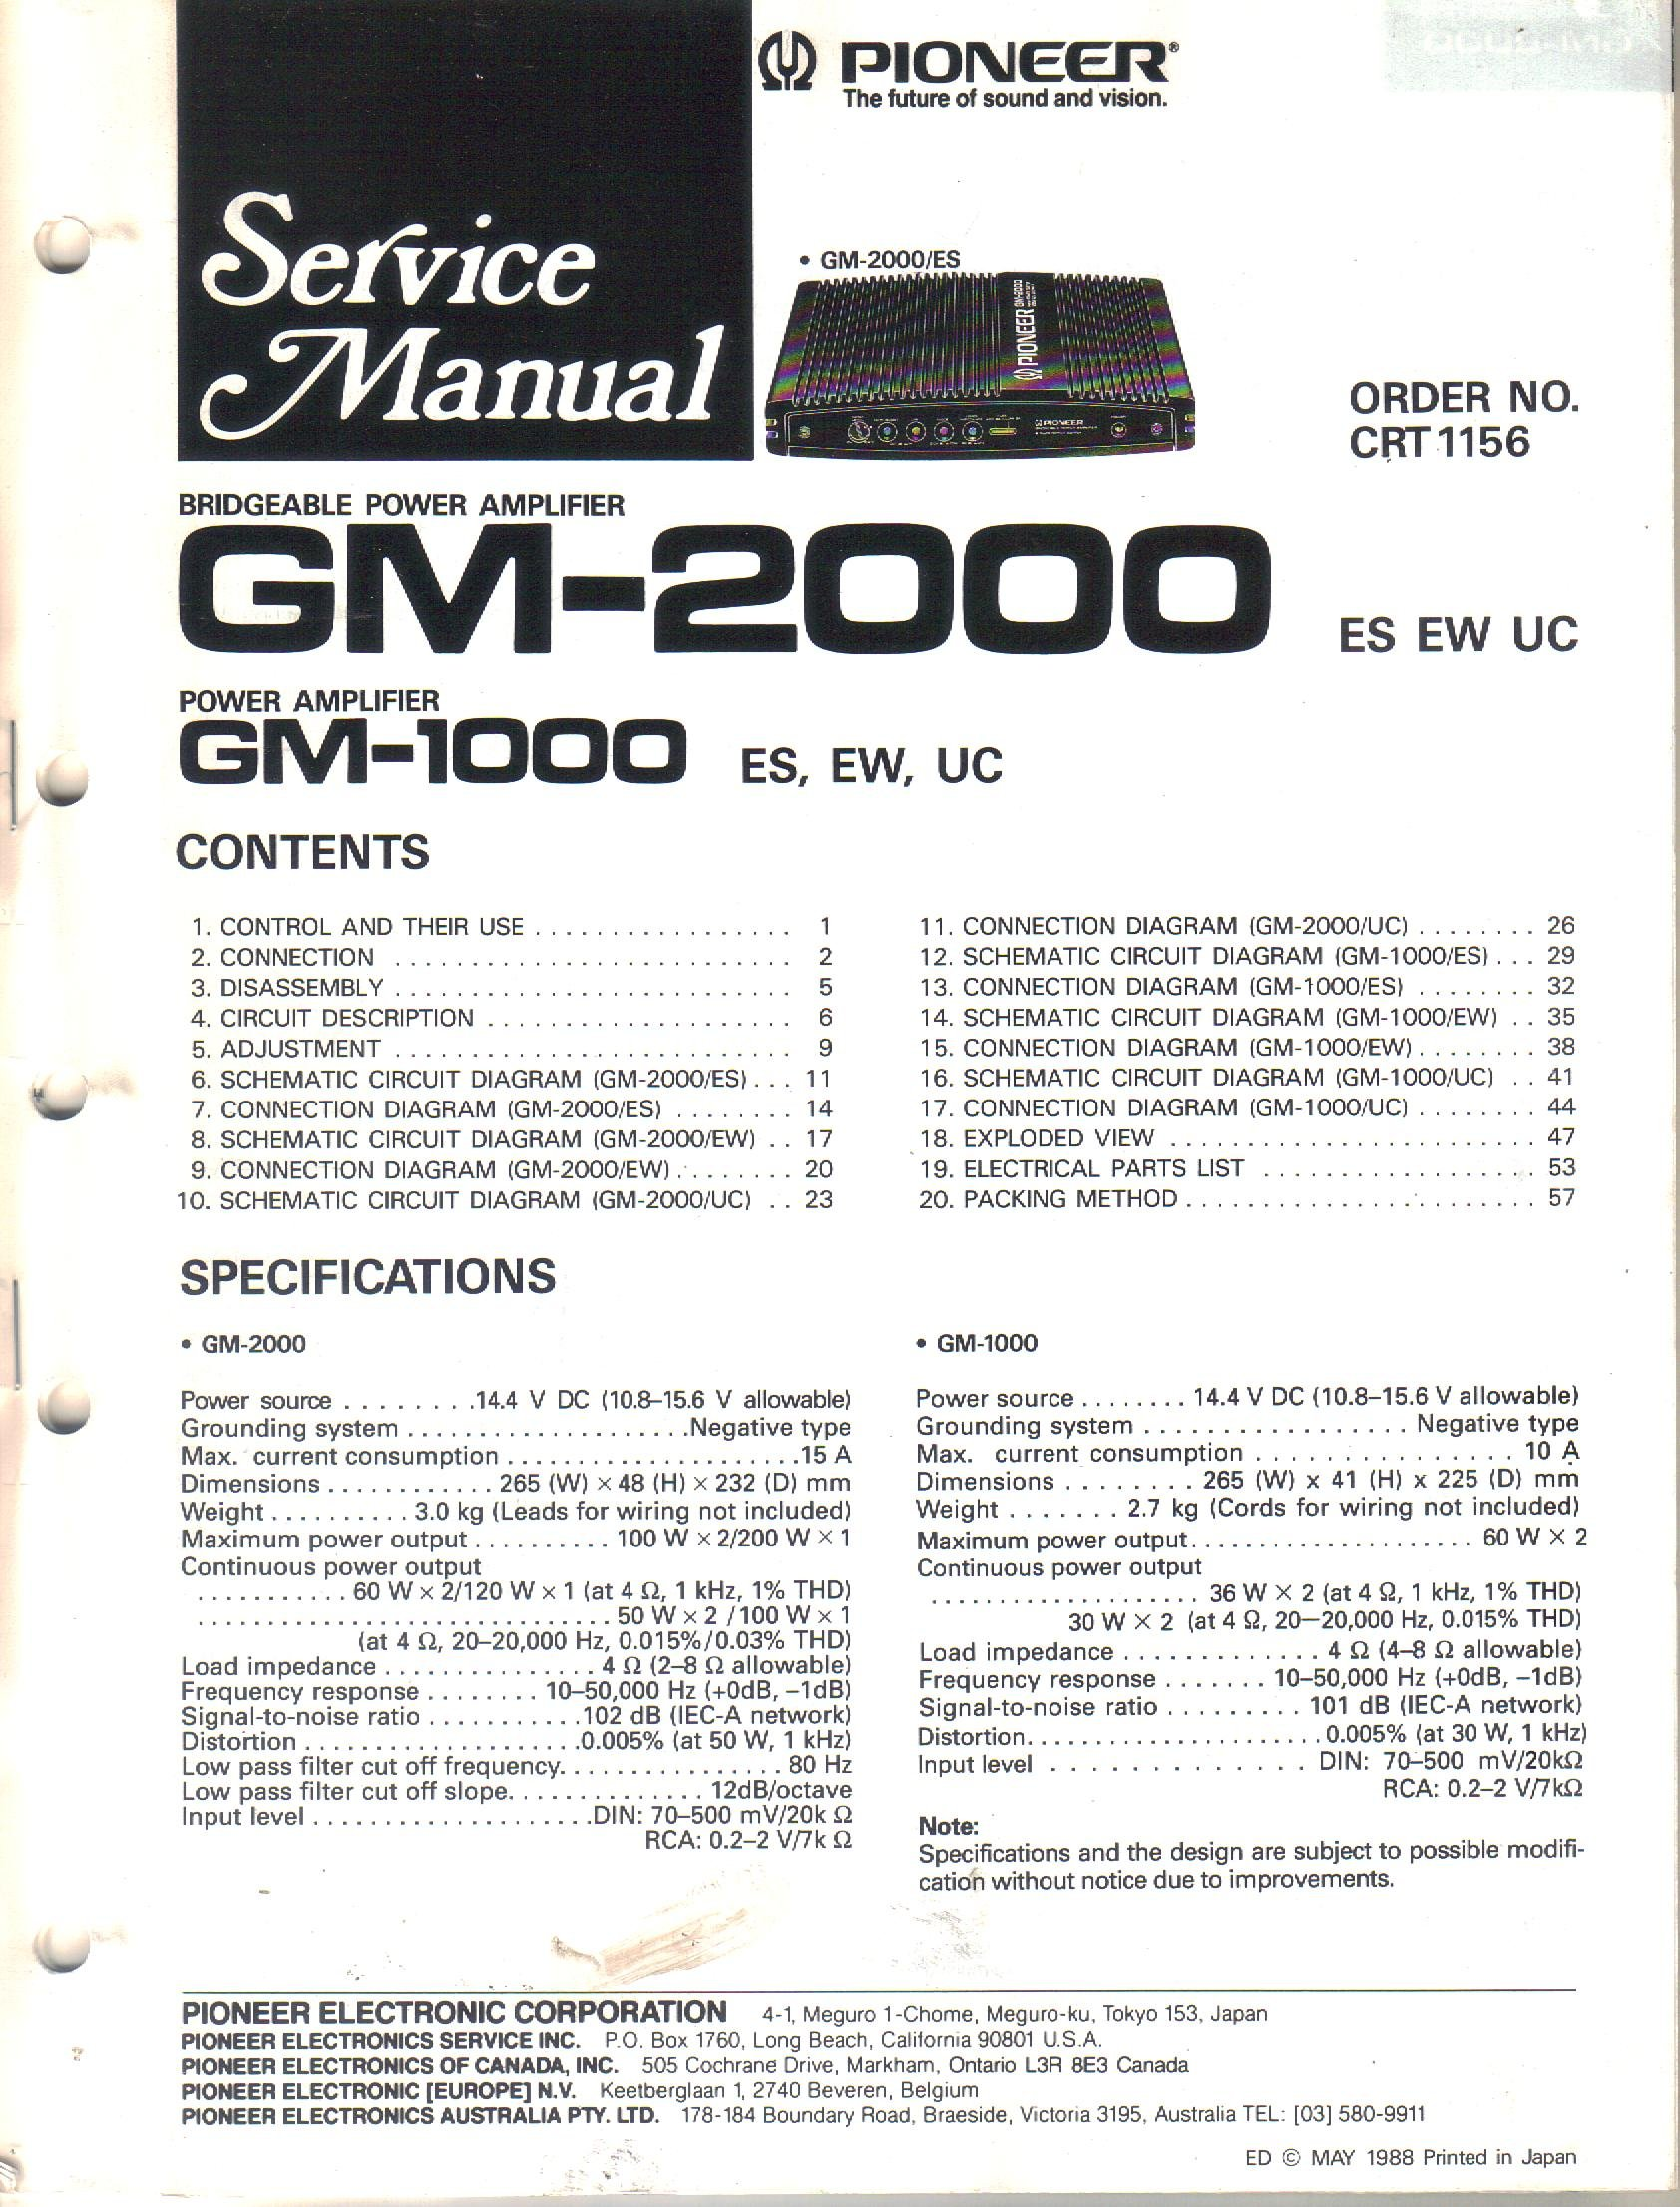 pioneer gm-2000 bridgeable power amplifier service manual, parts list, schematic  wiring diagram: pioneer electronic corp, not stated: amazon com: books